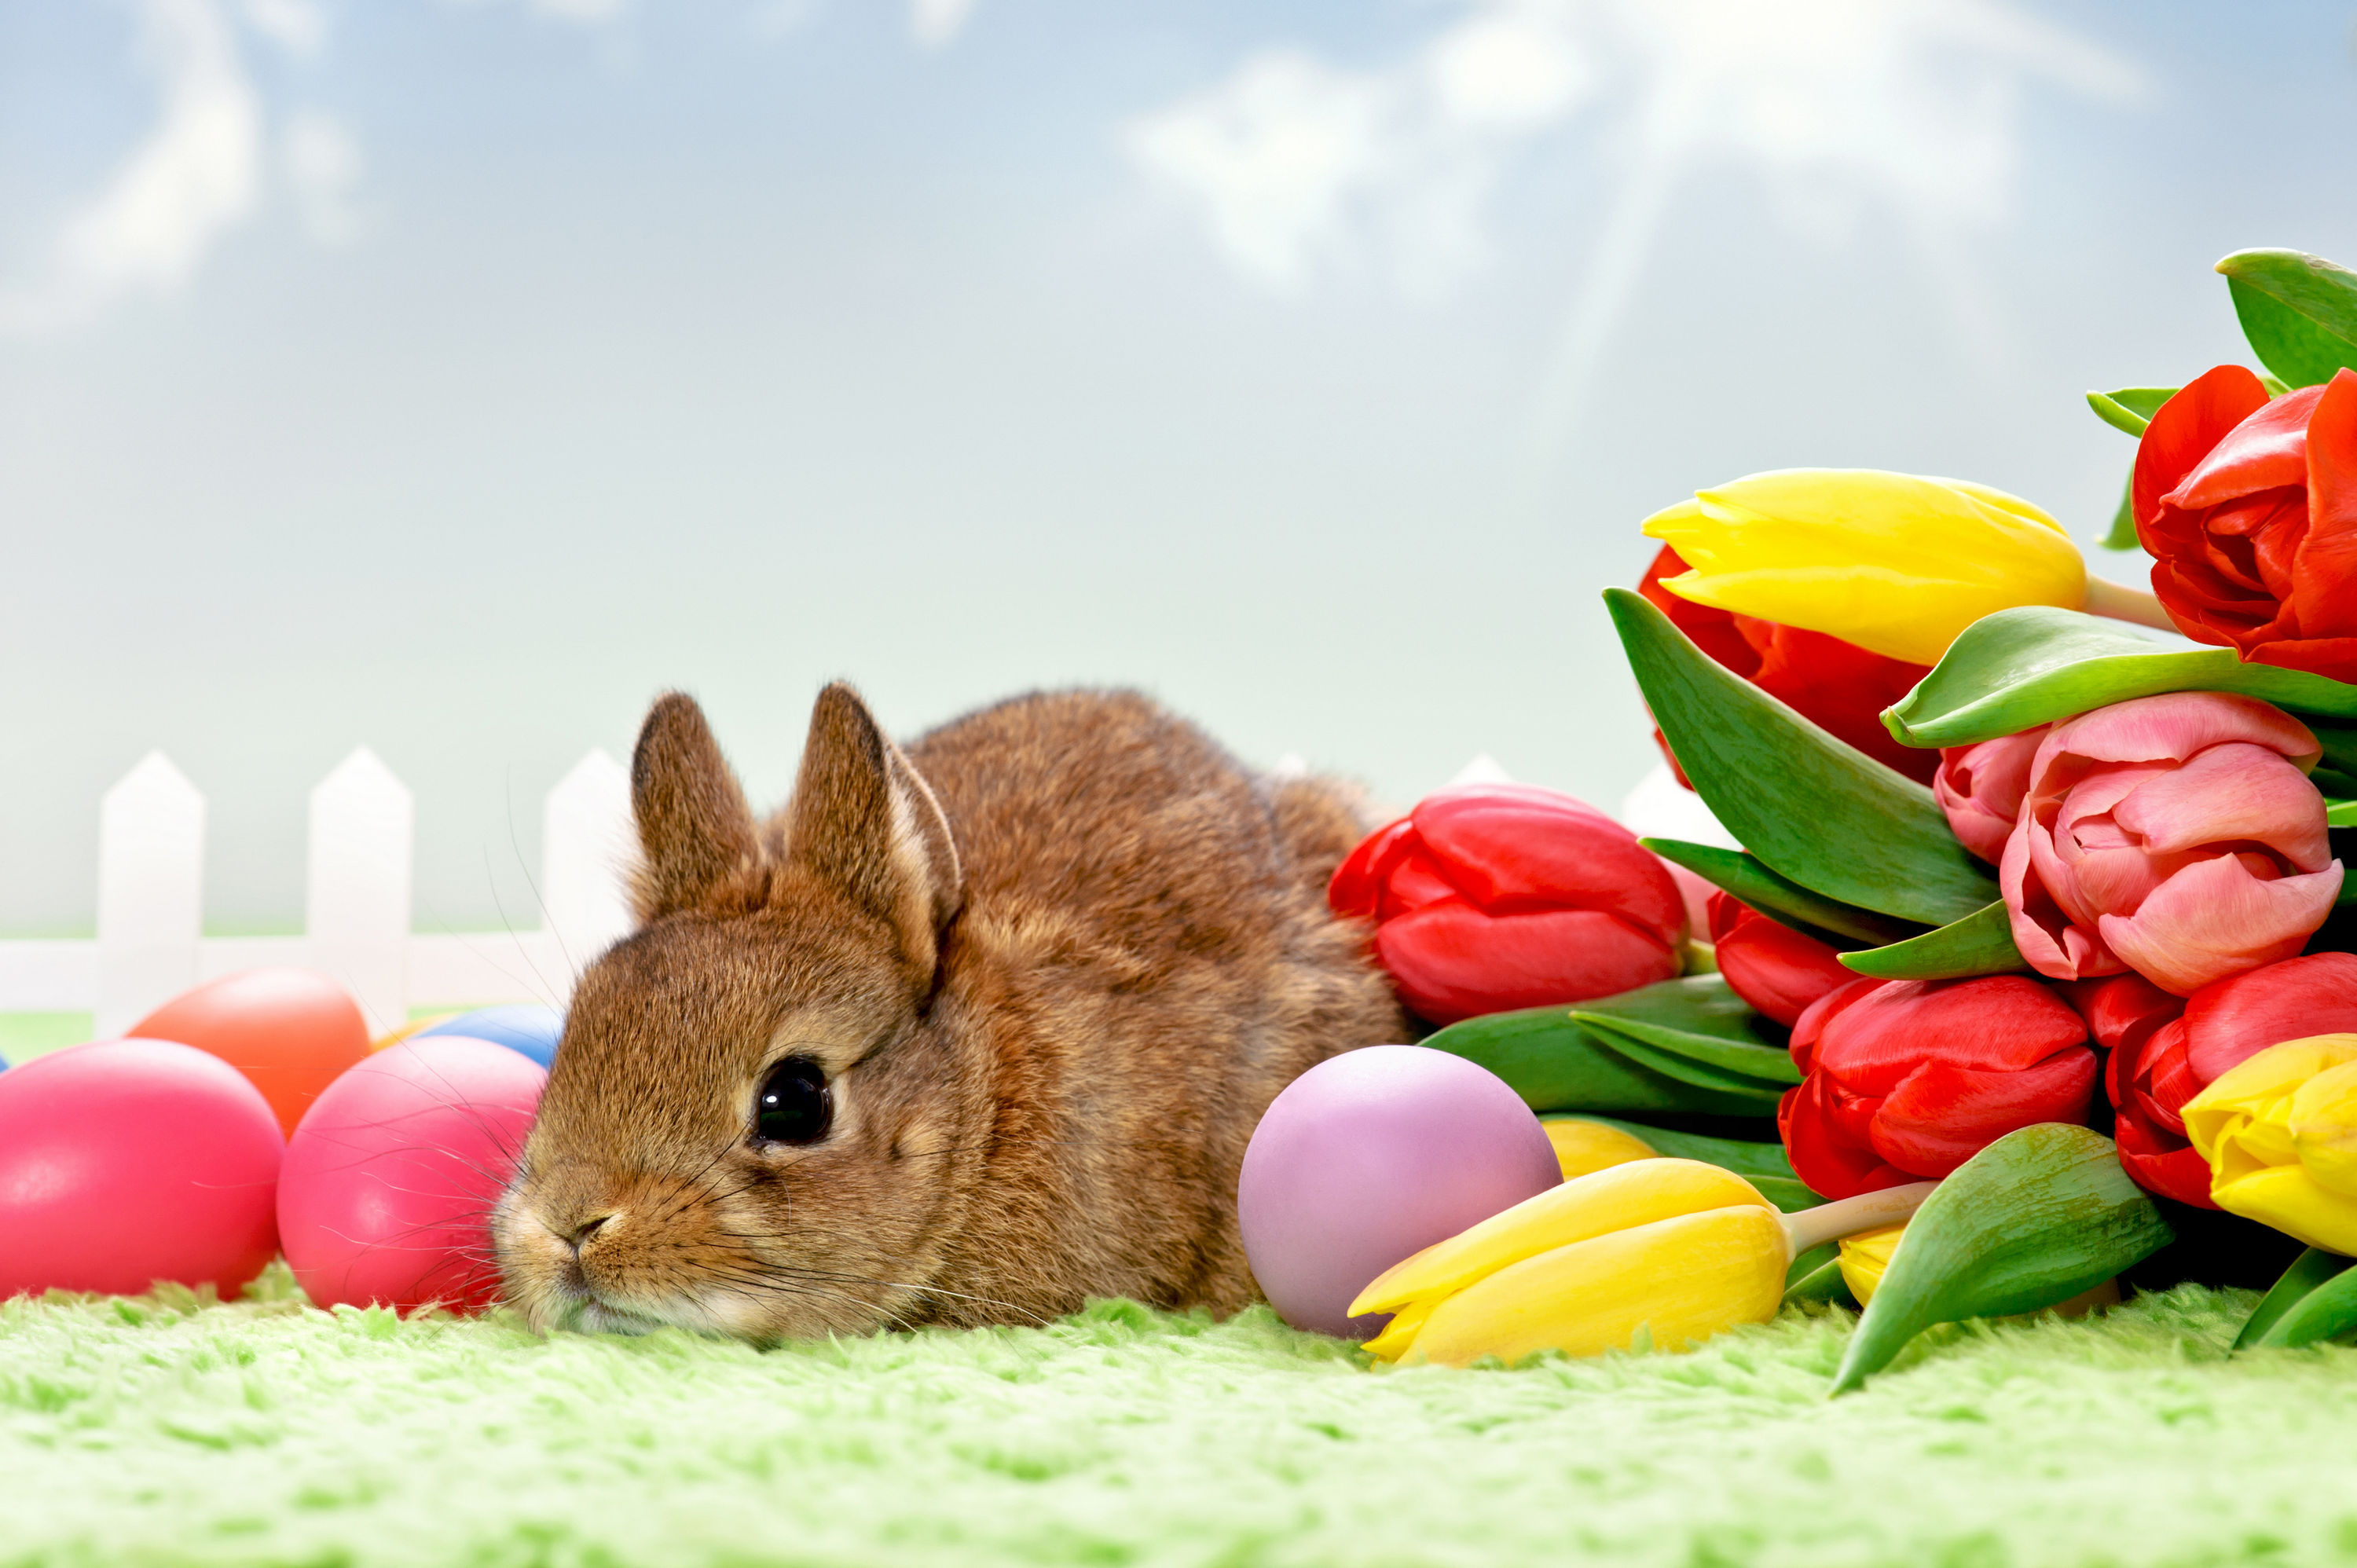 Easter bunny hd wallpaper background image 3000x1996 - Easter bunny wallpaper ...